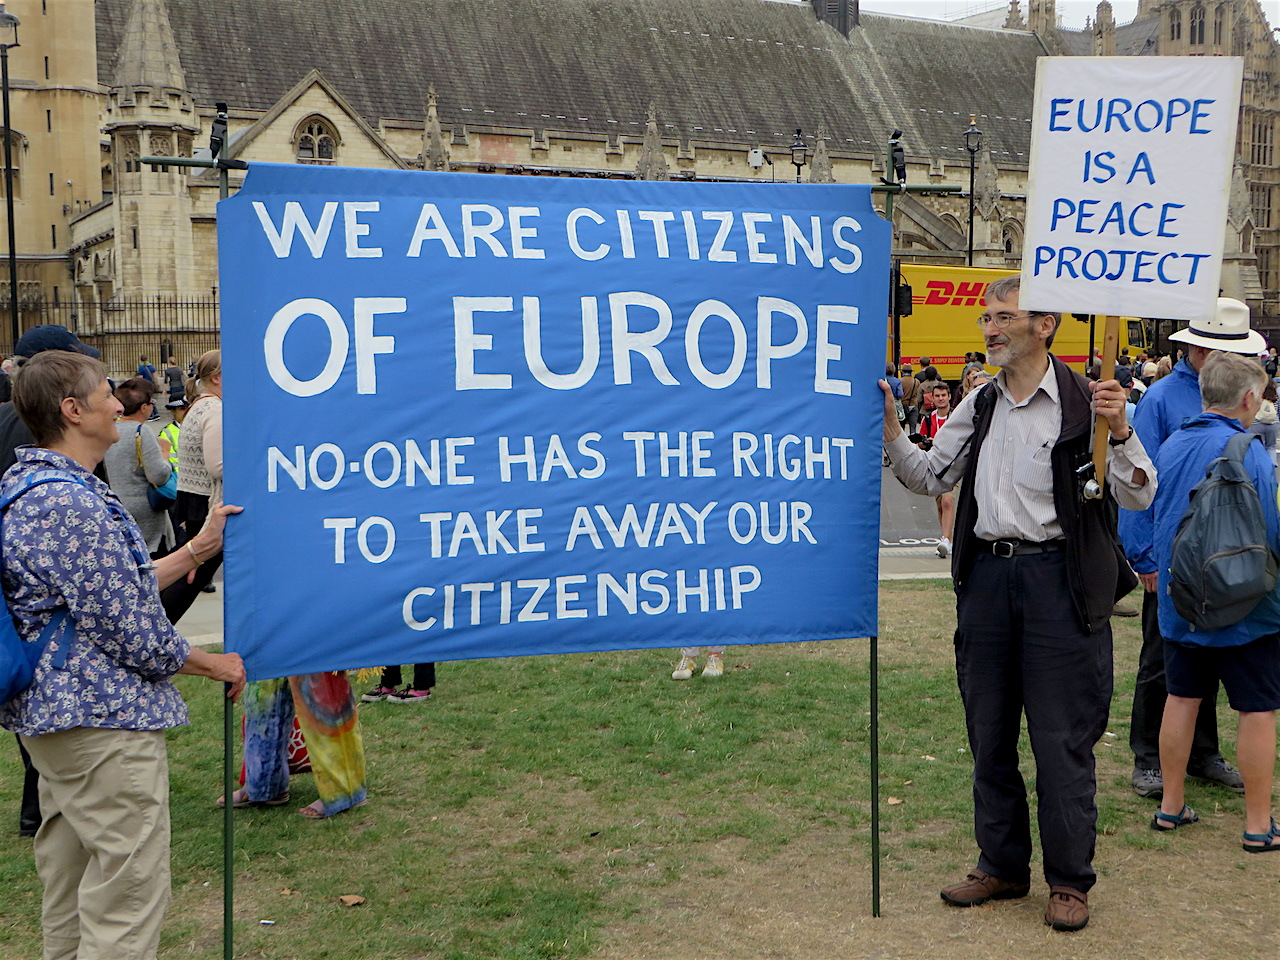 'We are citizens of Europe: No one has the right to take away our citizenship': a banner on the March for Europe in London, September 3, 2016 (Photo: Andy Worthington).